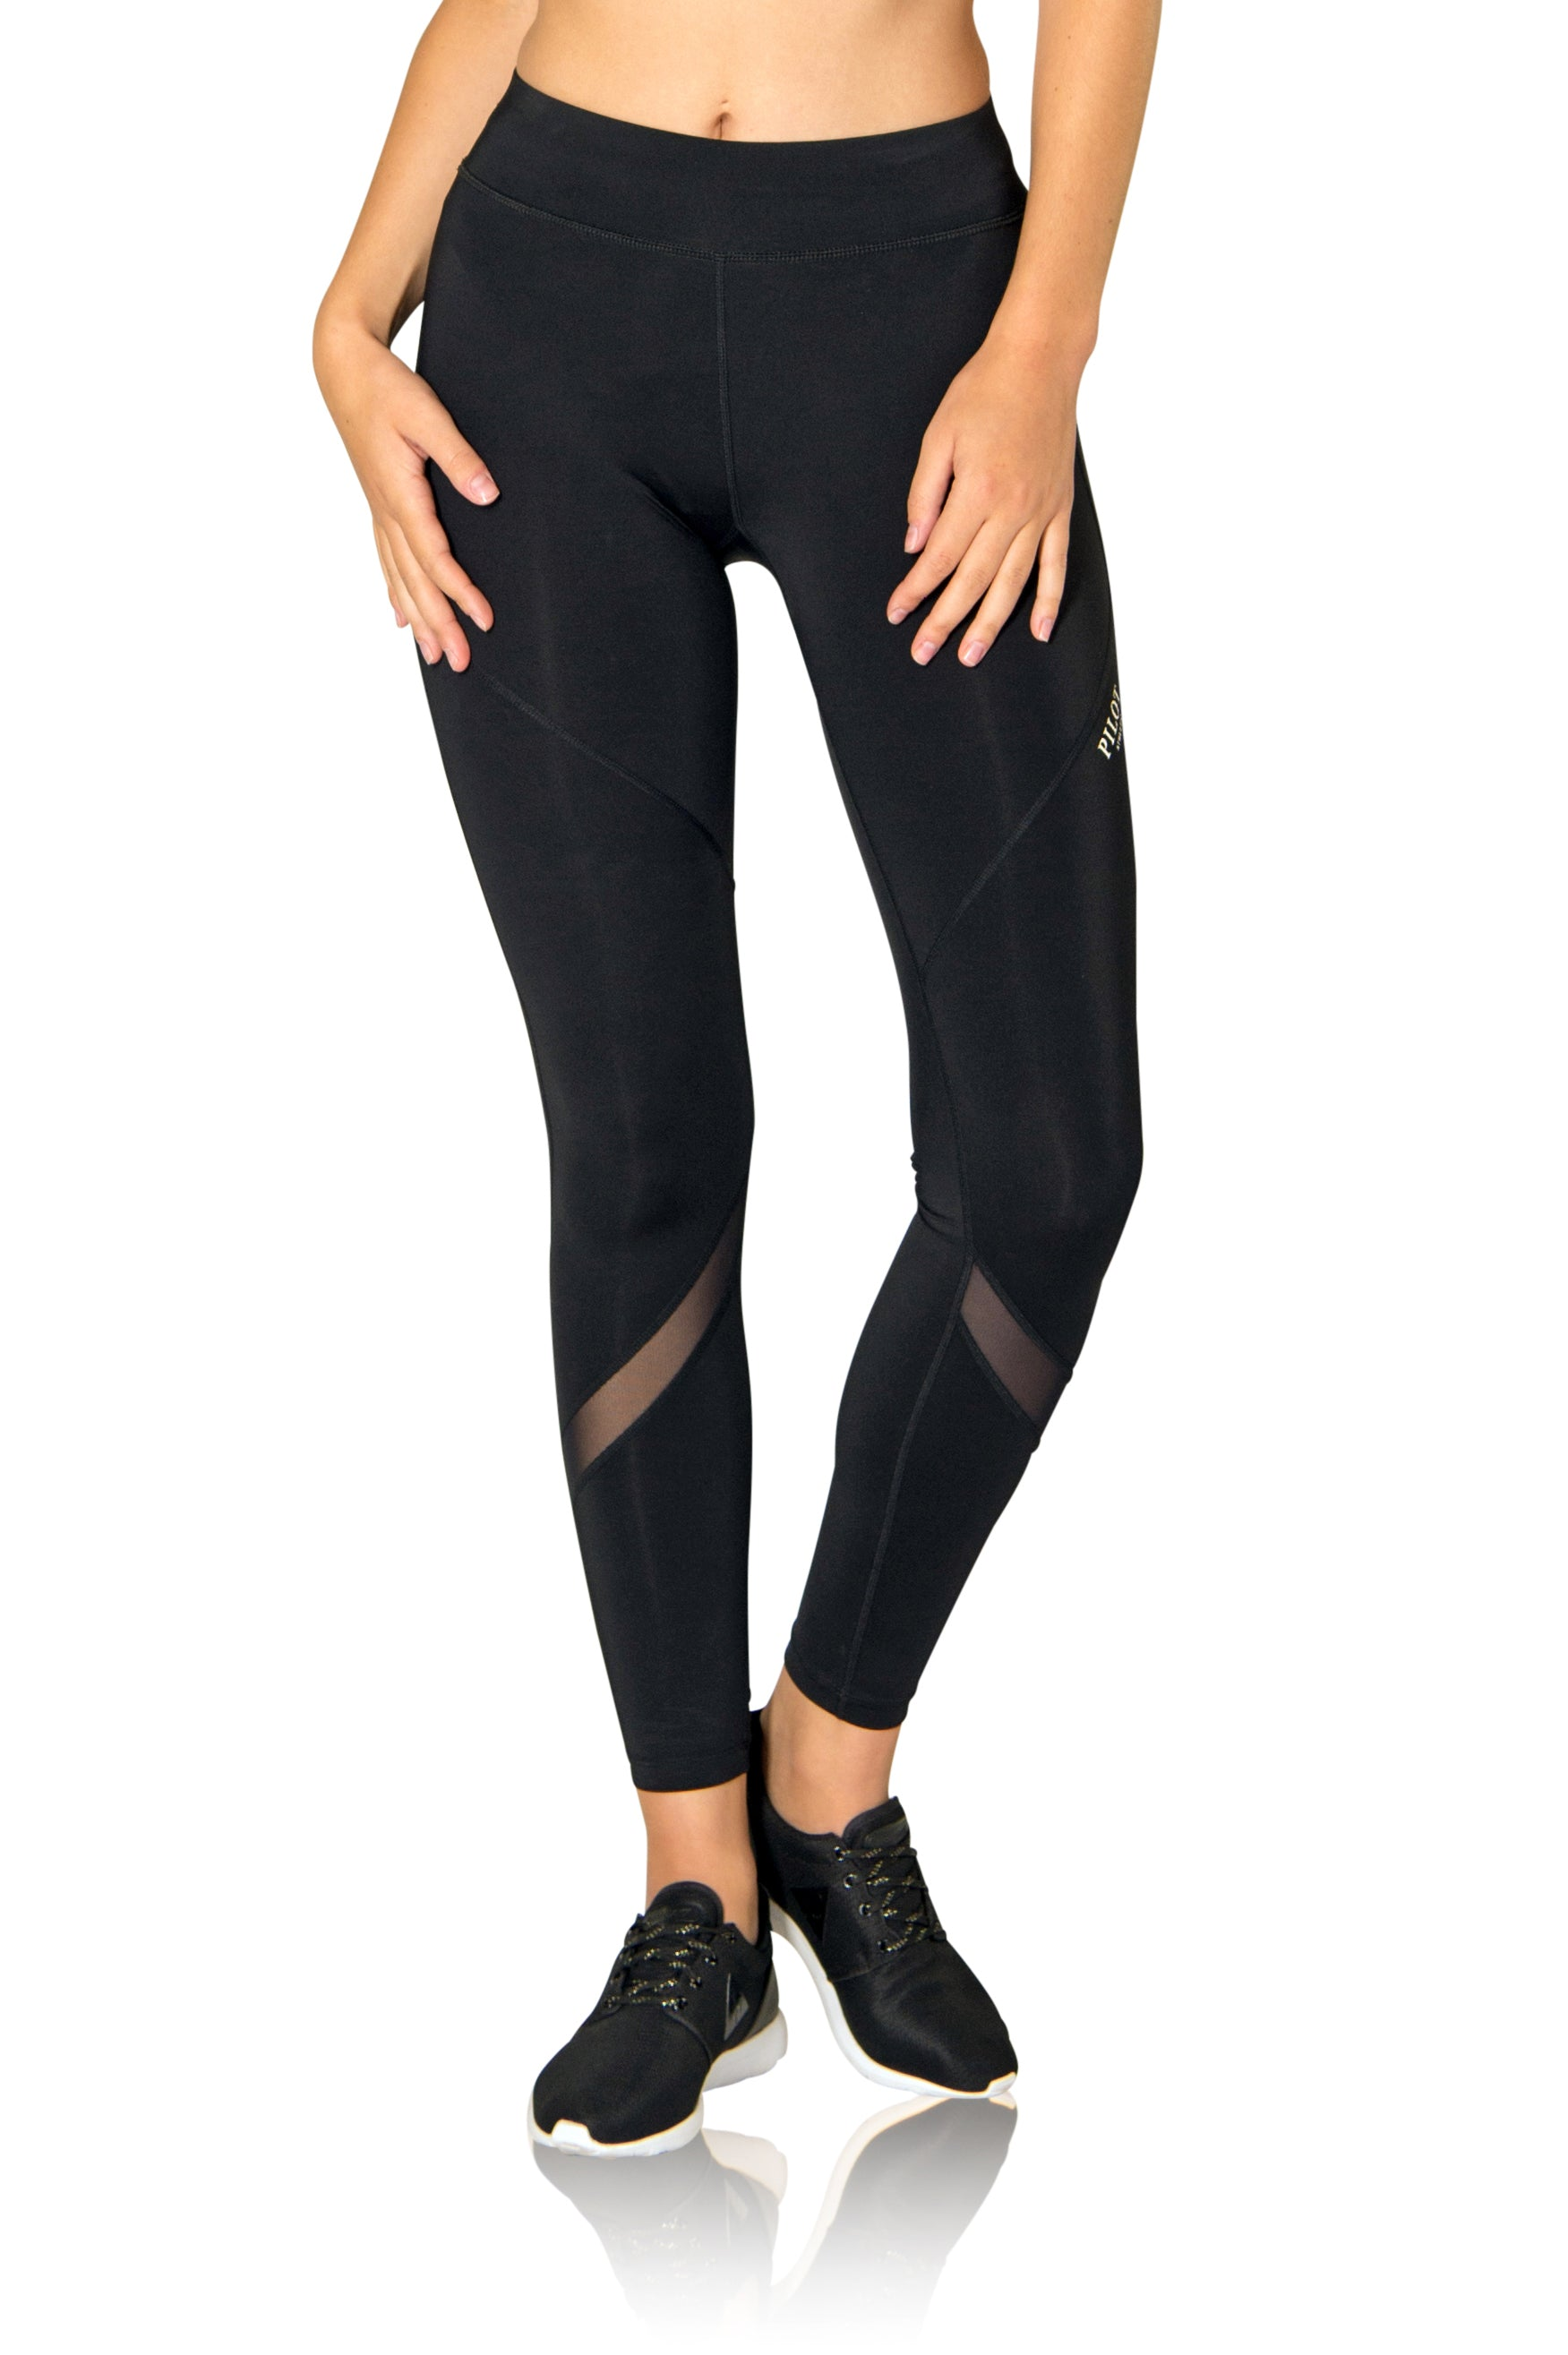 AVIATRIX FINN FULL LENGTH TIGHT